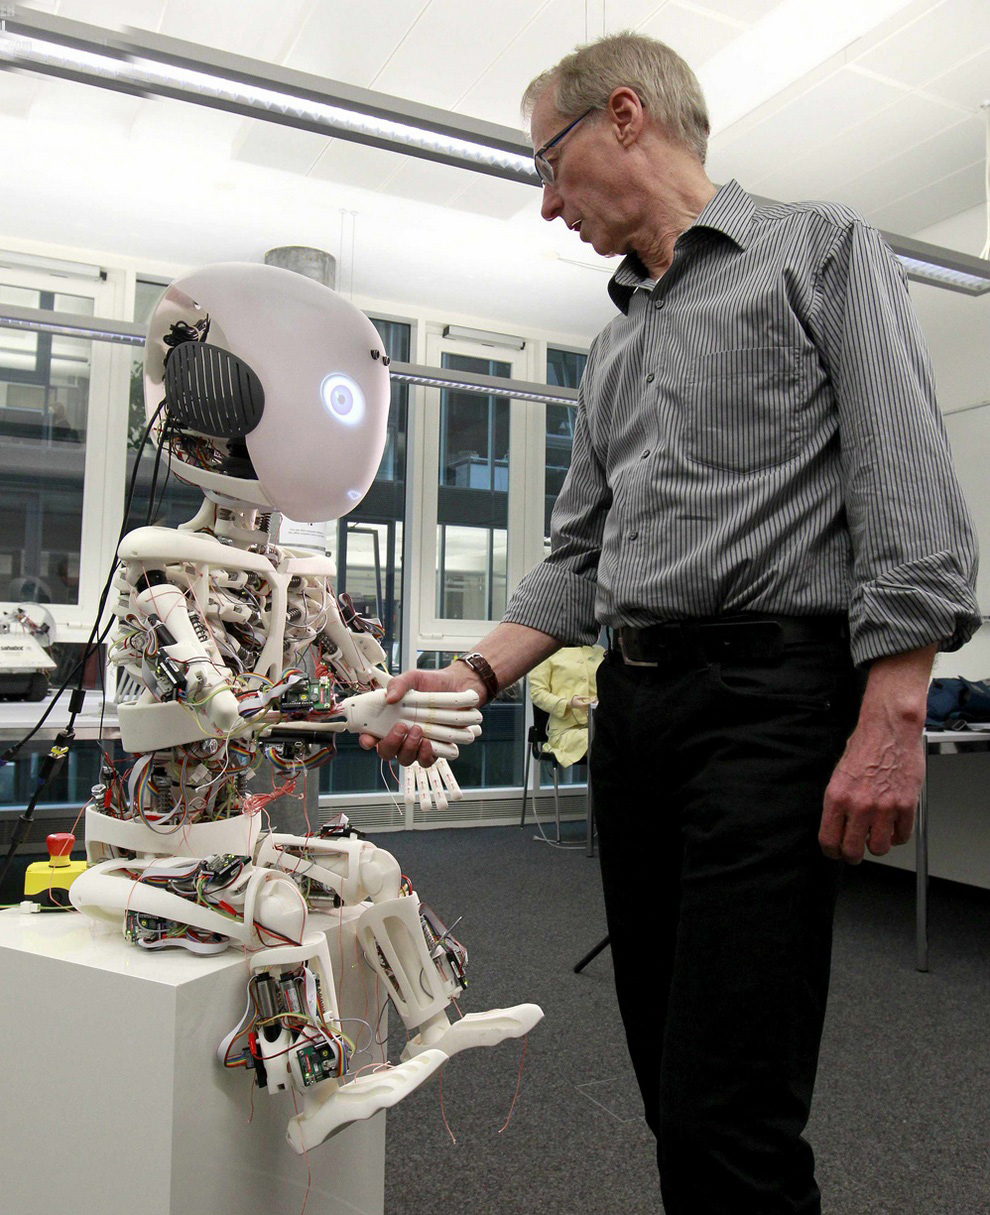 Director of the Laboratory of Artificial Intelligence Rolf Pfeifer shakes hands with his creation